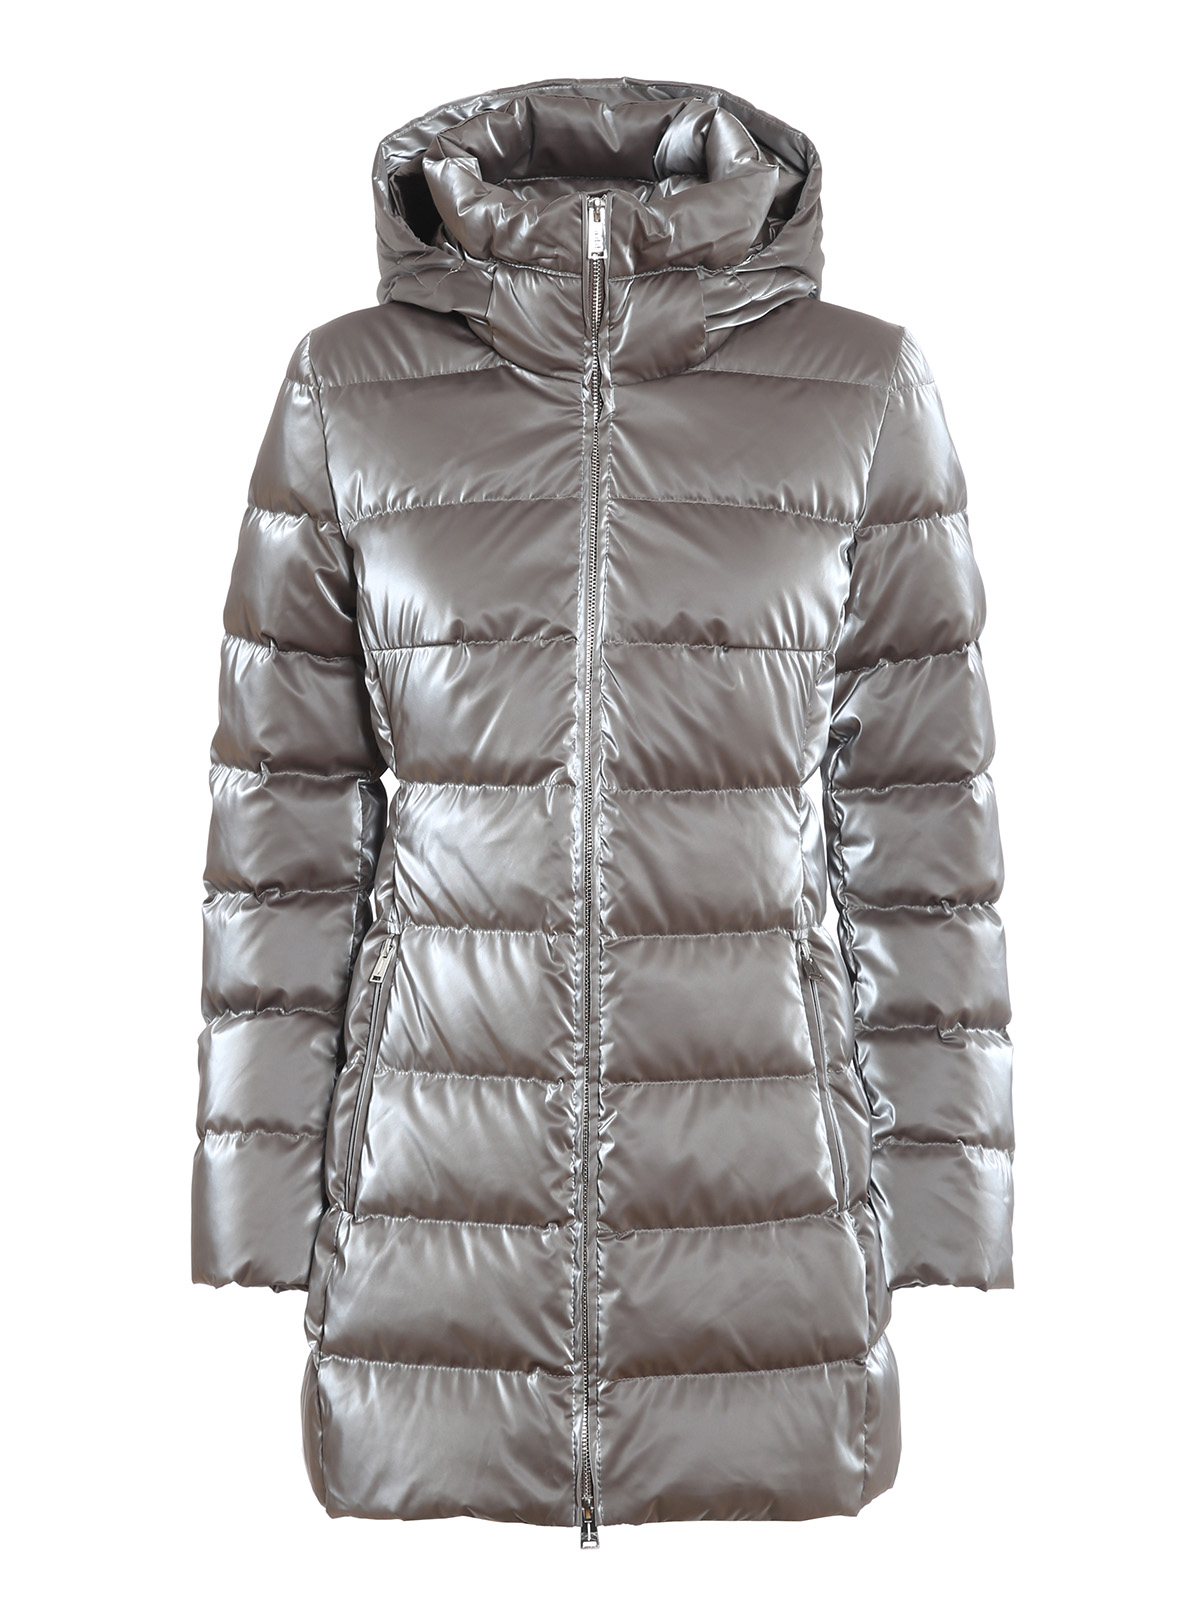 Add LAMINATED EFFECT LONGUETTE PUFFER JACKET